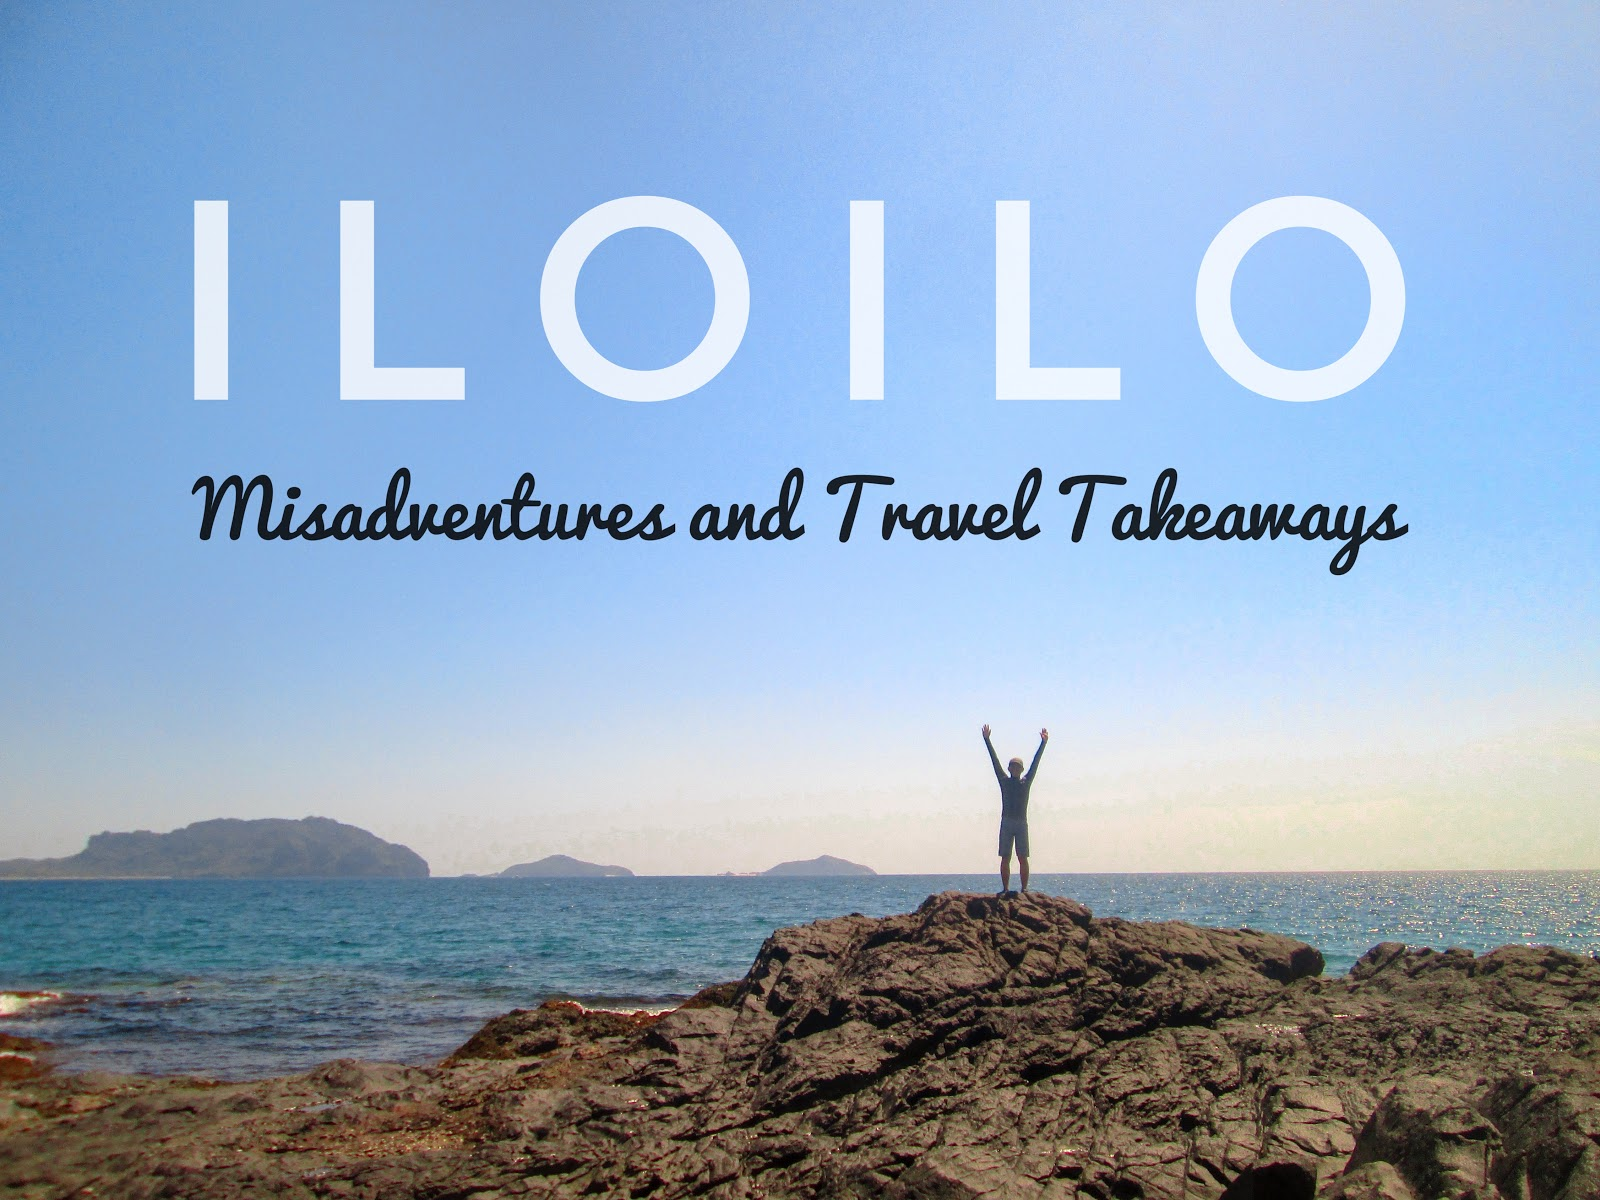 IloIlo Misadventures and Travel Takeaways